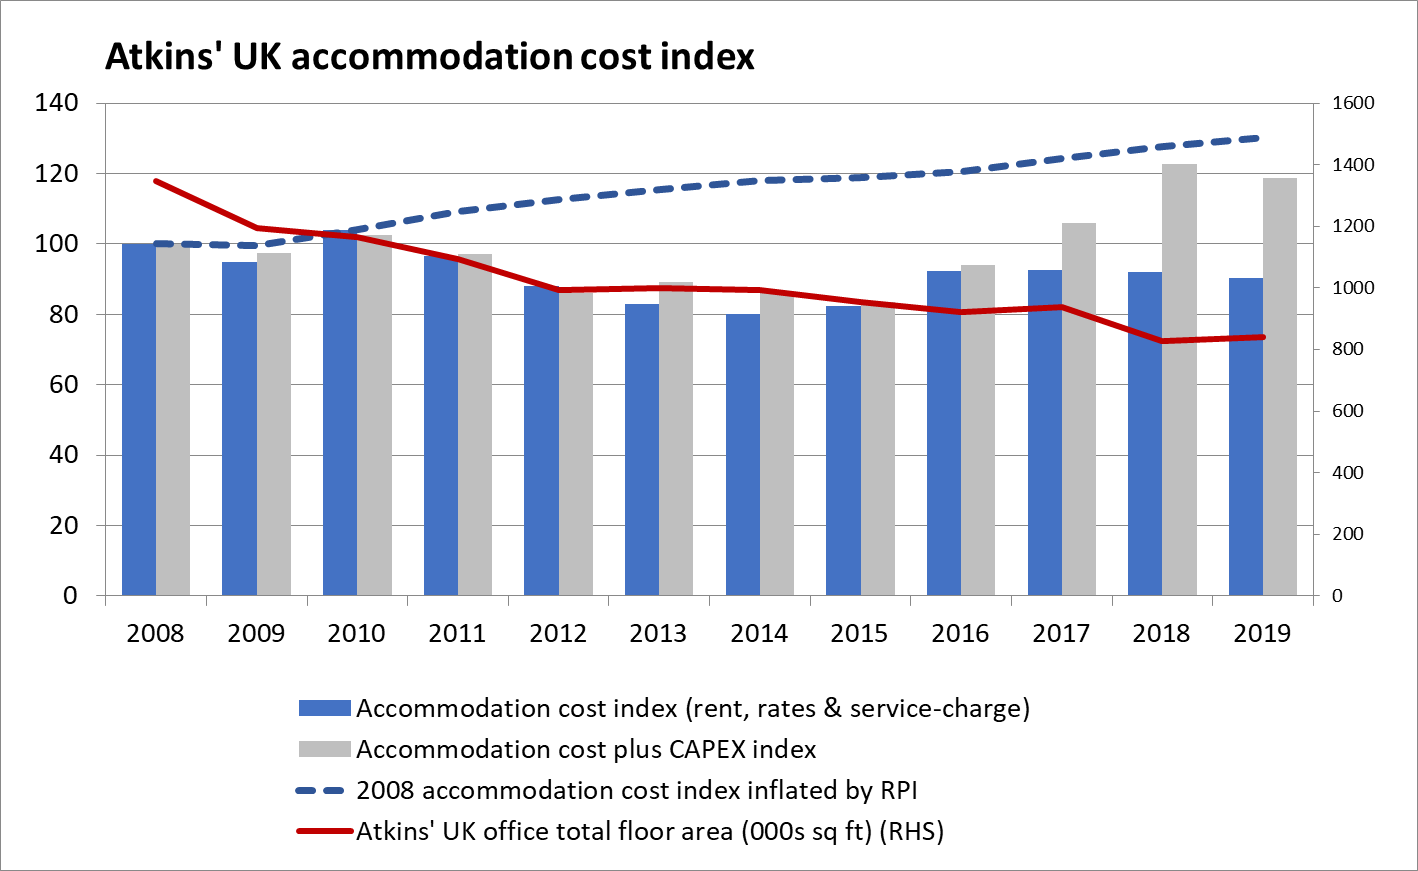 Accommodation cost index